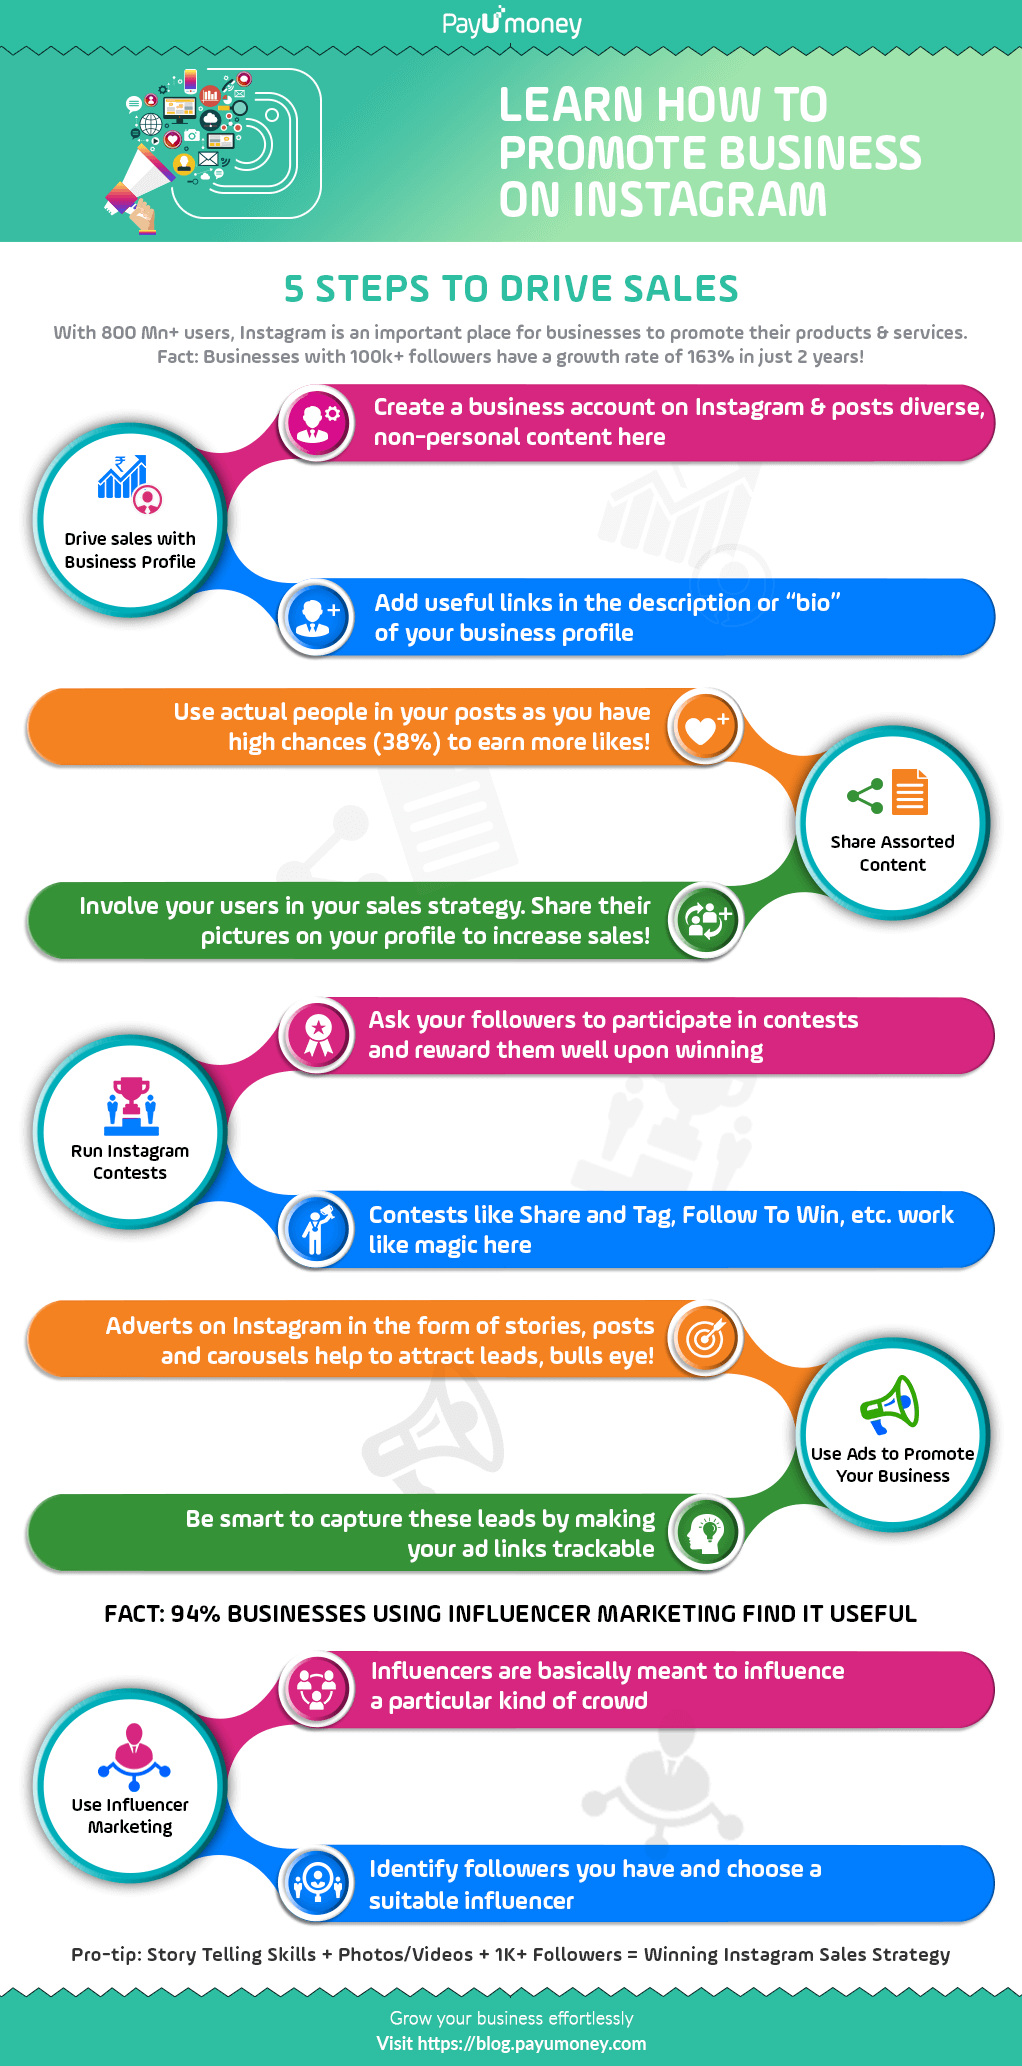 how-to-promote-business-on-instagram-infographic-plaza